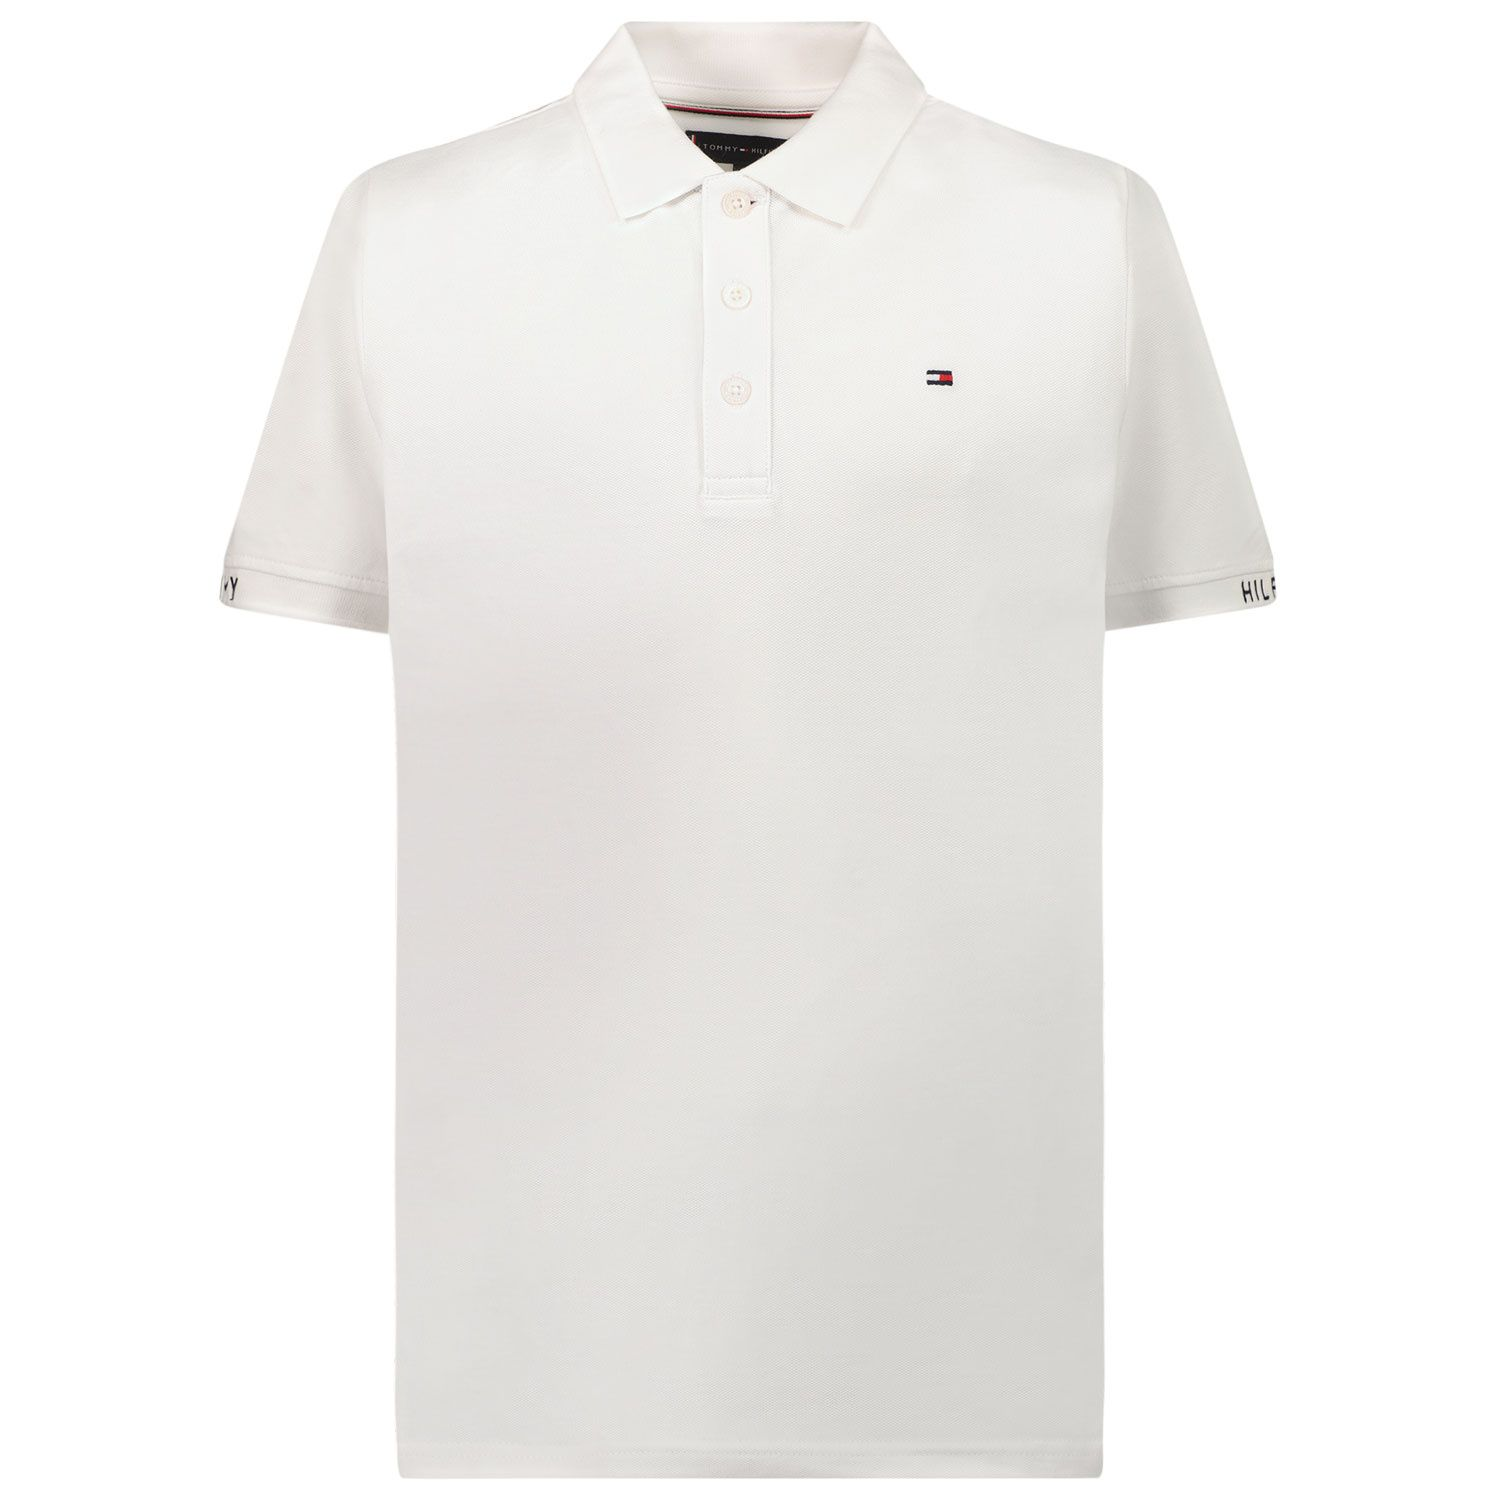 Picture of Tommy Hilfiger KB0KB06538 kids polo shirt white